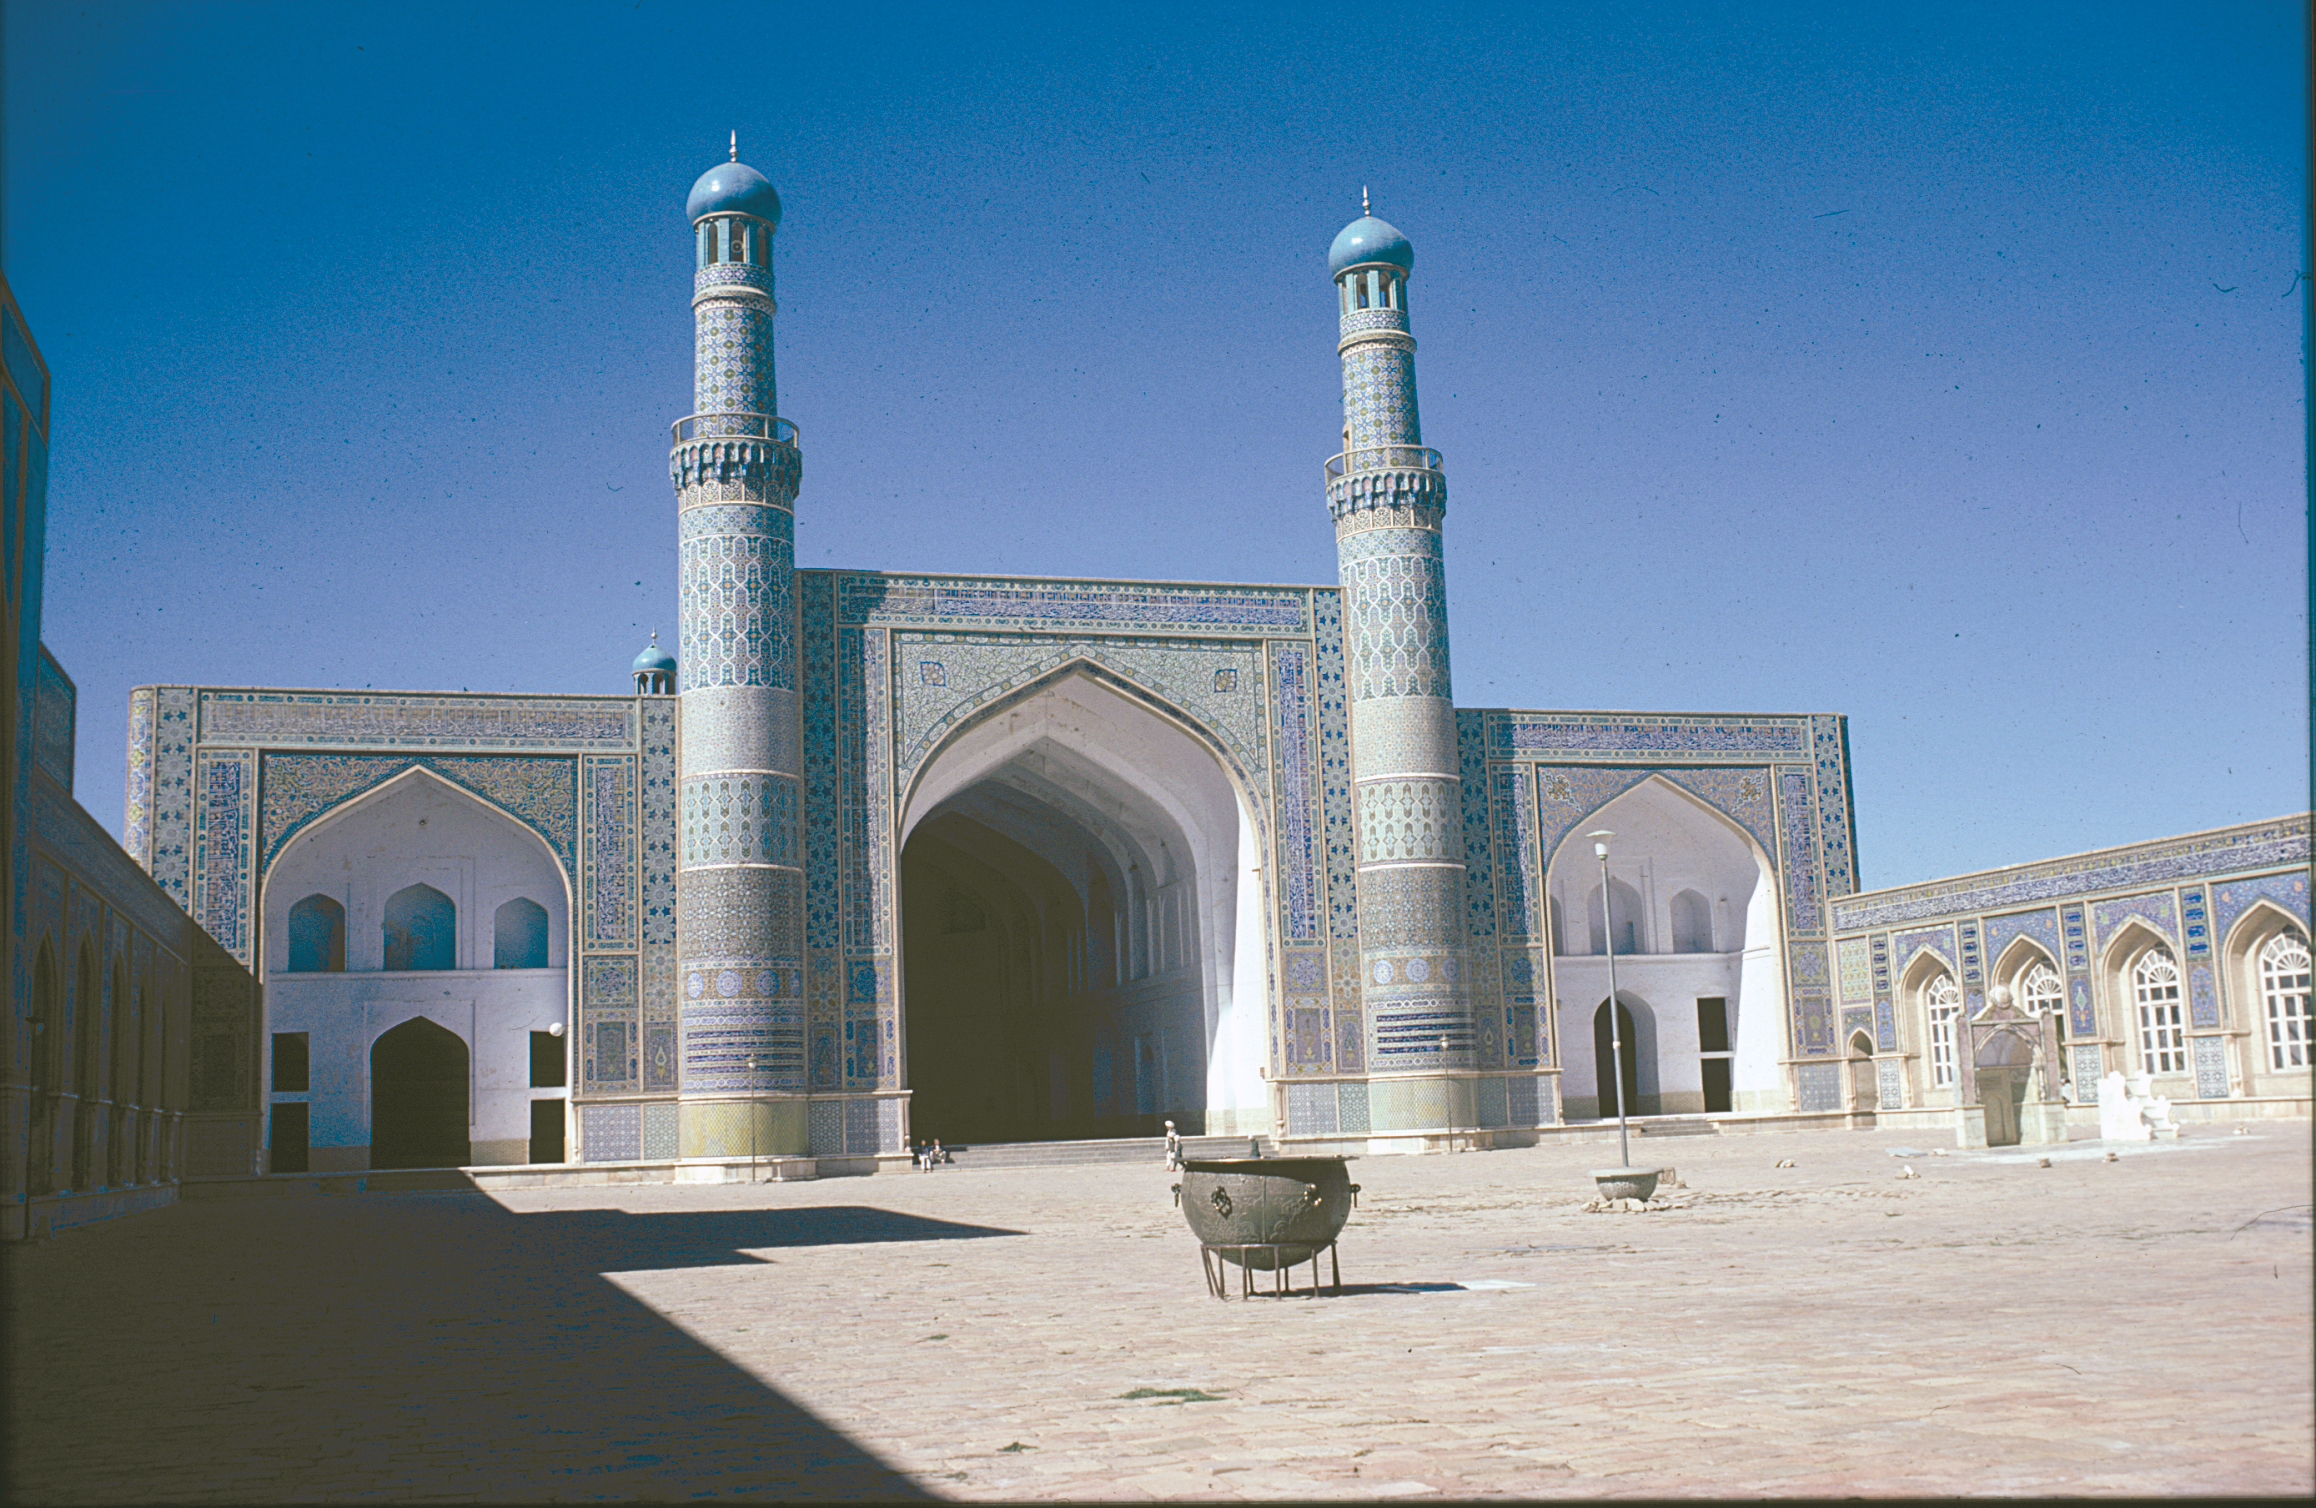 The Masjid-i-Jami mosque in Herat. The vaulted entrance and the colourful mosaics are characteristic of Timurid architechture. Photo: Moesgaard Museum